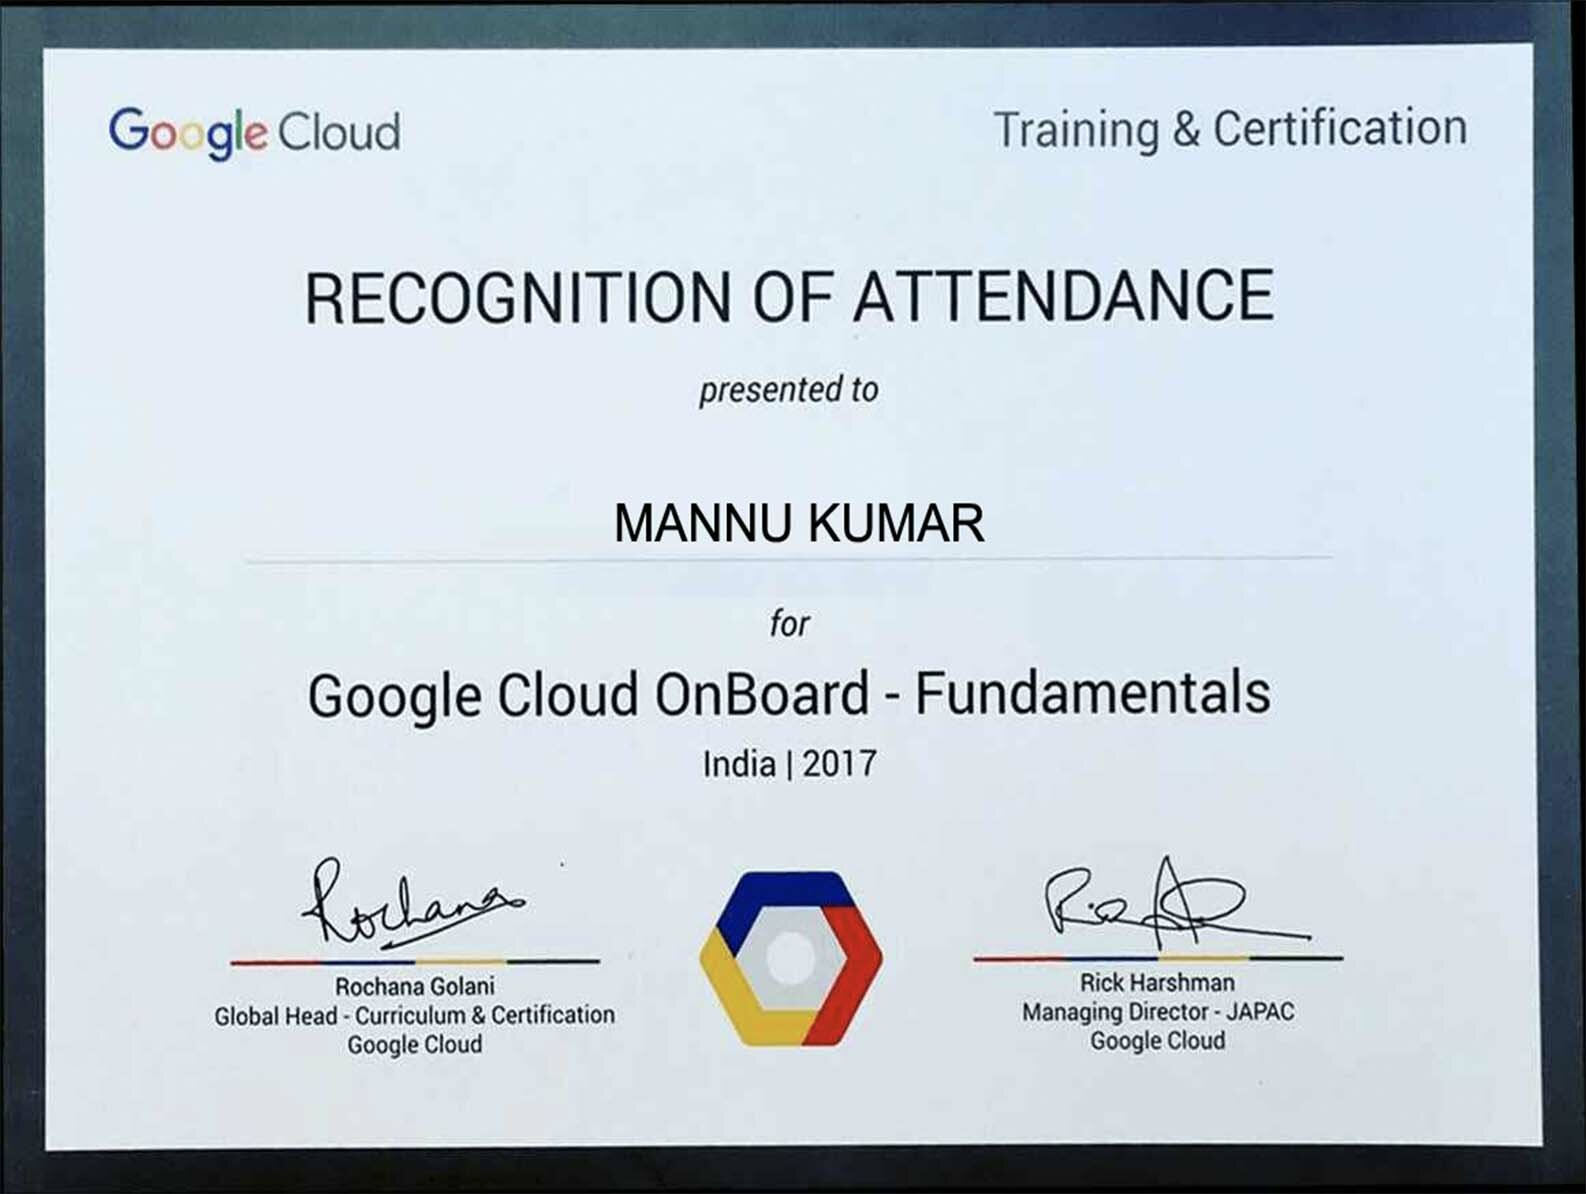 Google Cloud OnBoard-Fundamentals Certification